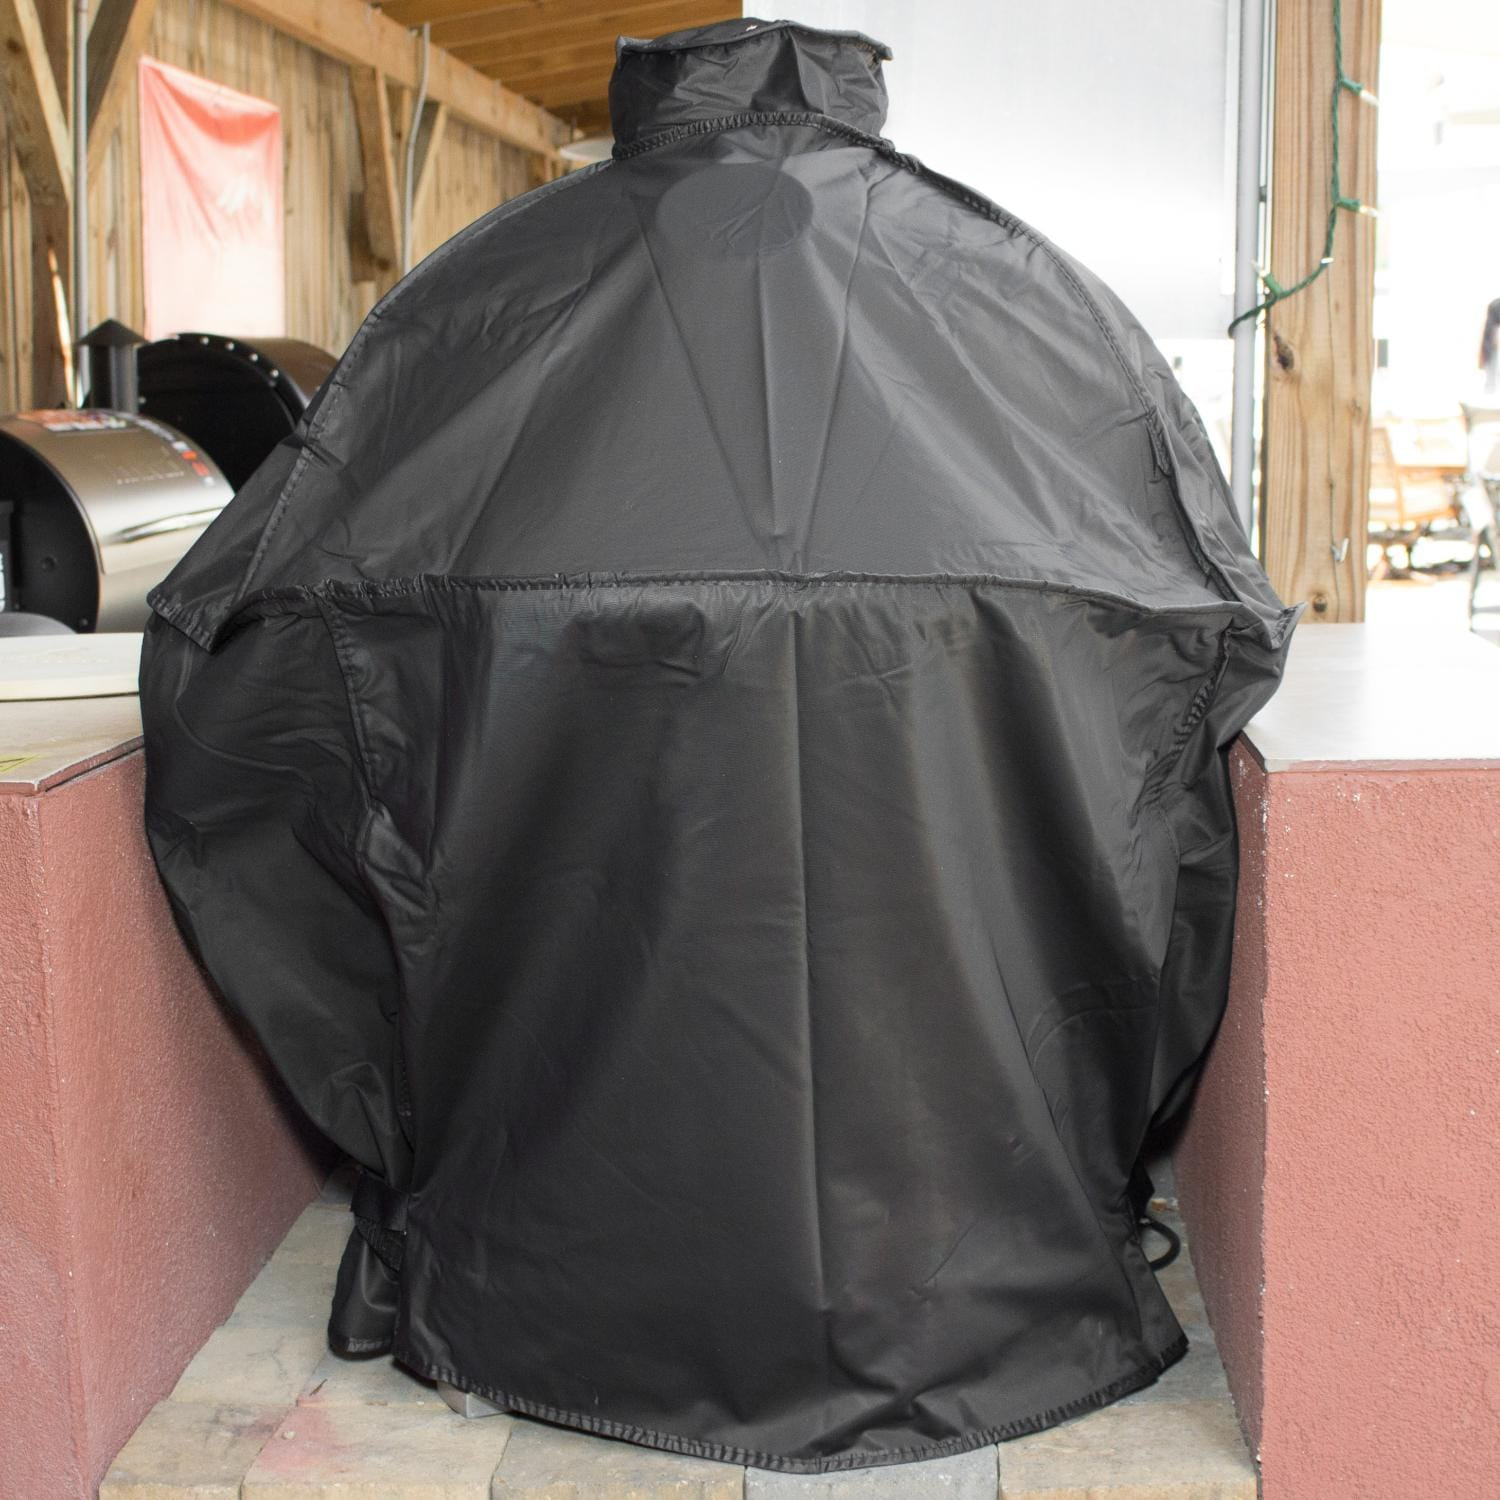 Blaze Grill Cover For Kamado 20-Inch Grills - 20KMBICV